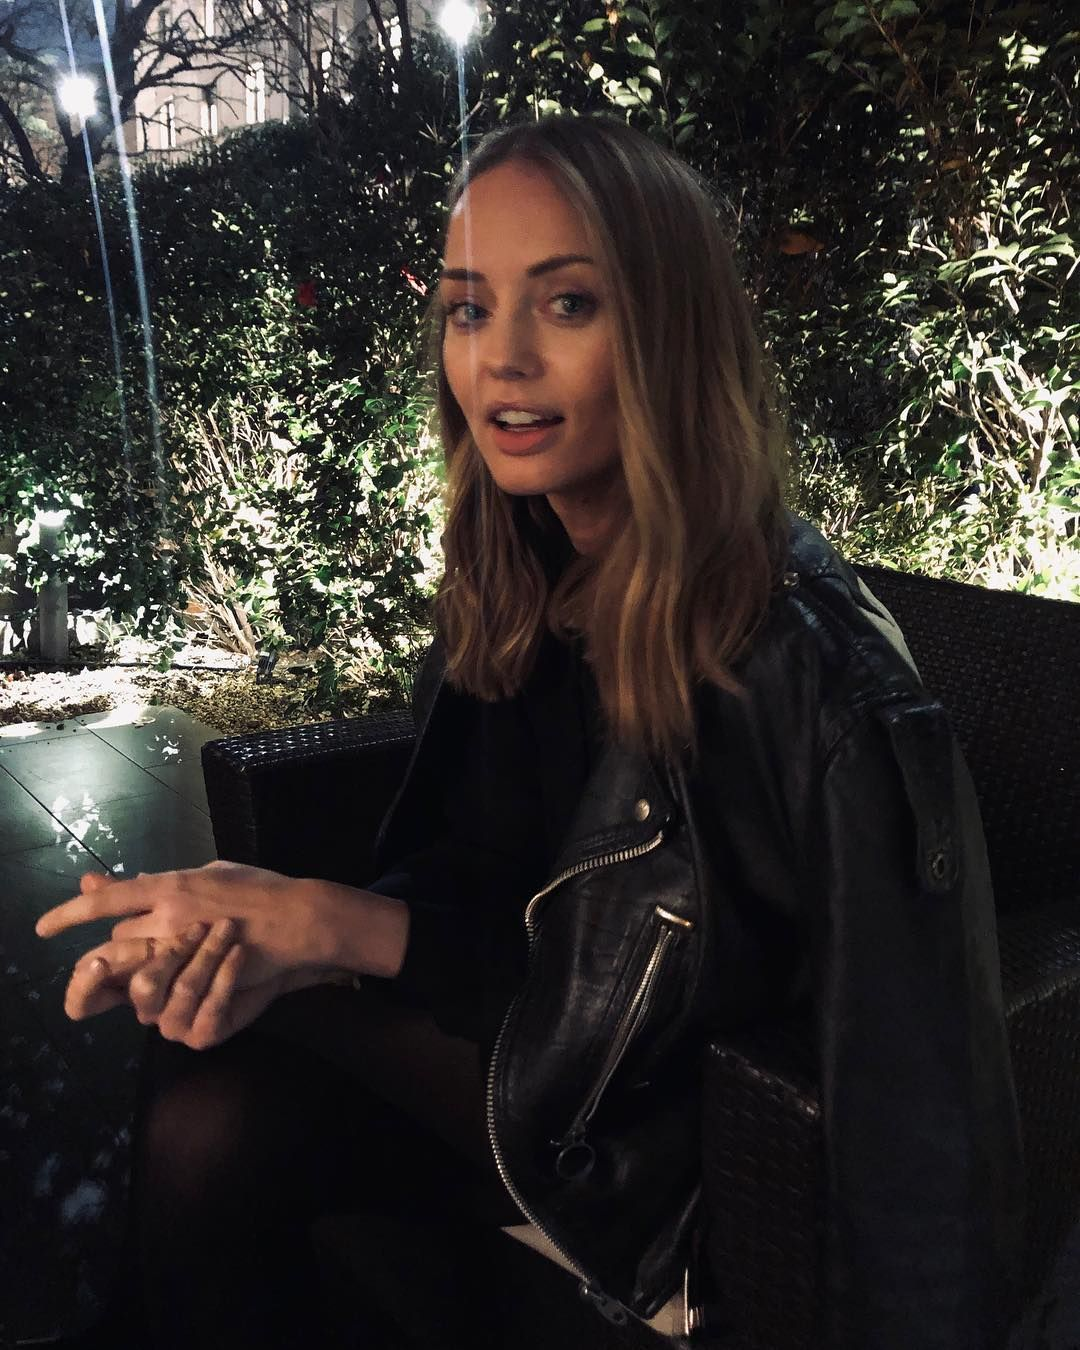 Image may contain: The Capture cast, The Capture, BBC, Laura Haddock, Hannah Roberts, drama, show, new, conspiracy, CCTV, about, plot, Leather Jacket, Human, Person, Coat, Jacket, Clothing, Apparel